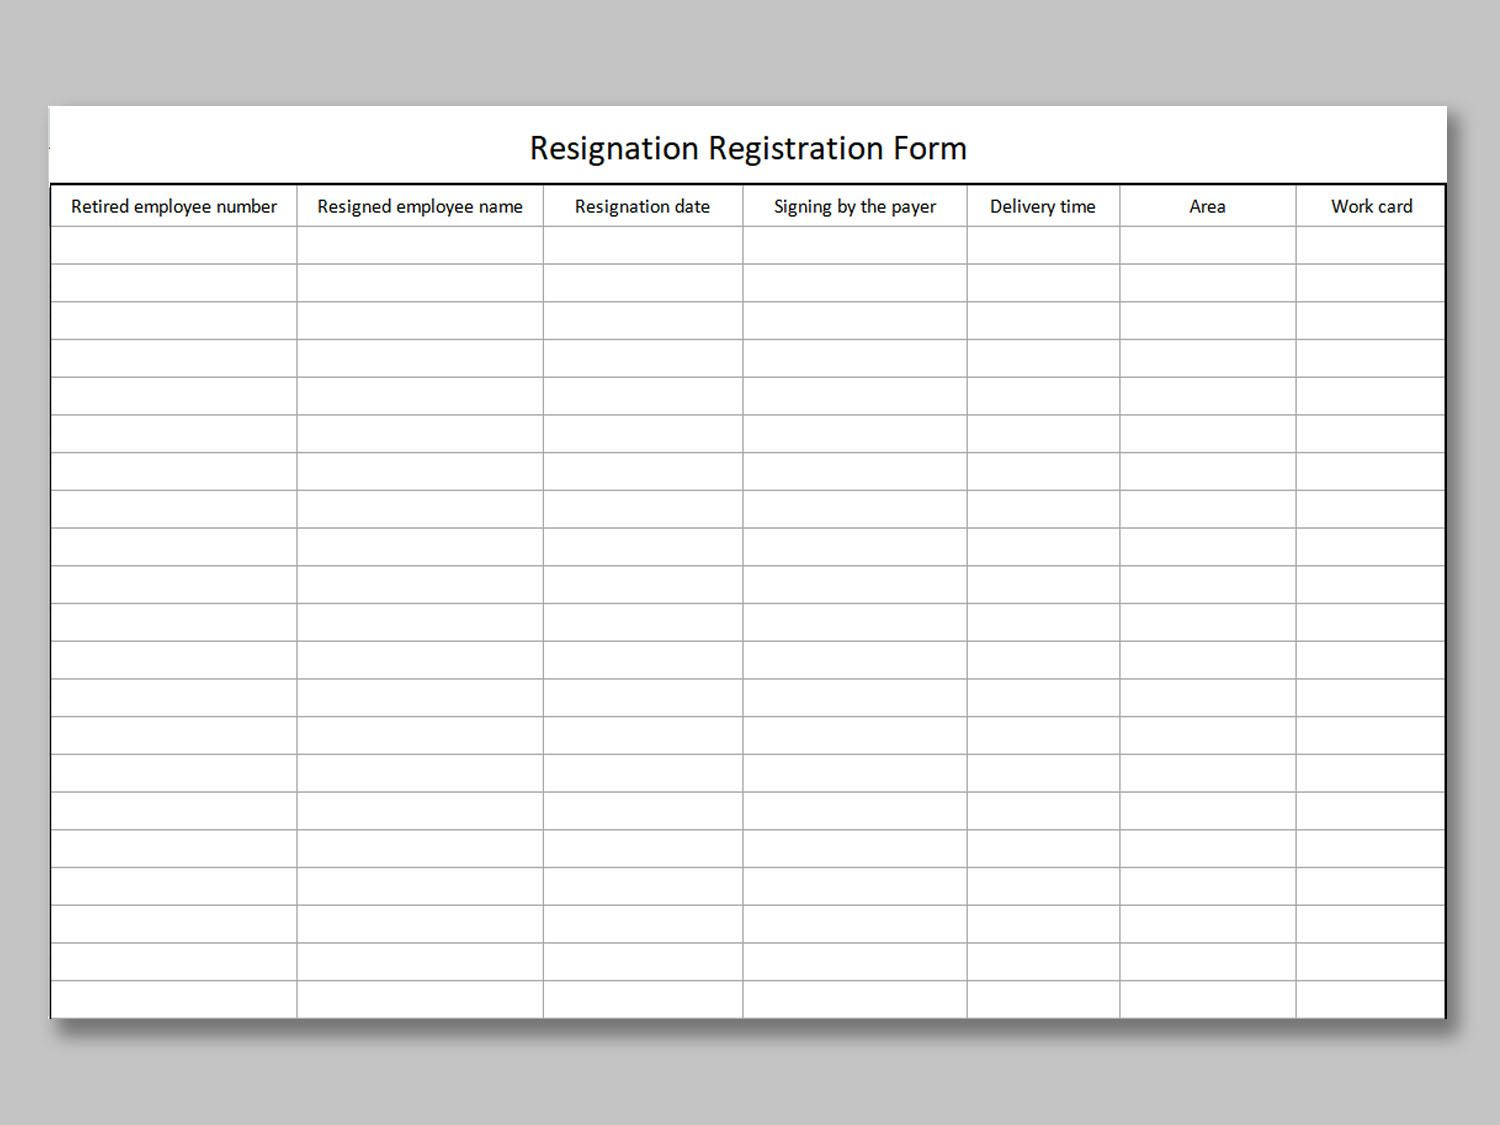 001 Archaicawful Registration Form Template Free Download Sample  Bootstrap Student W3layout In PhpFull